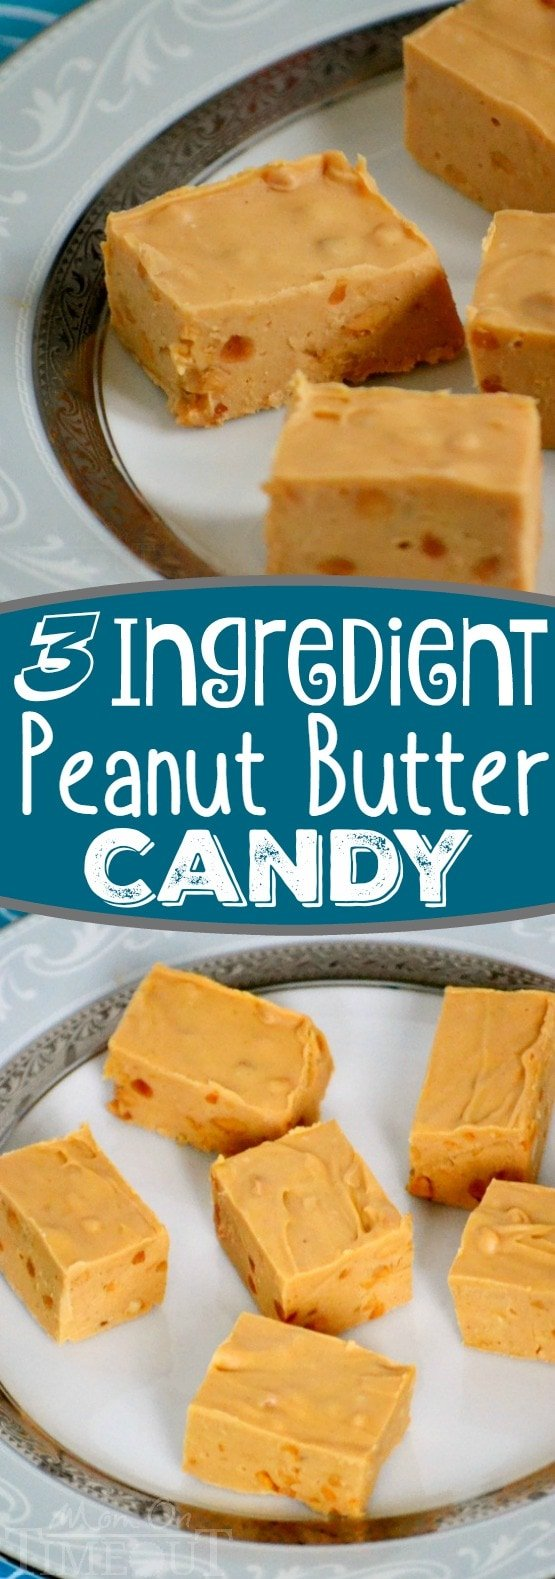 A delicious 3-ingredient Peanut Butter Candy recipe peanut butter lovers are sure to enjoy! Recipes just don't get any easier than this one!